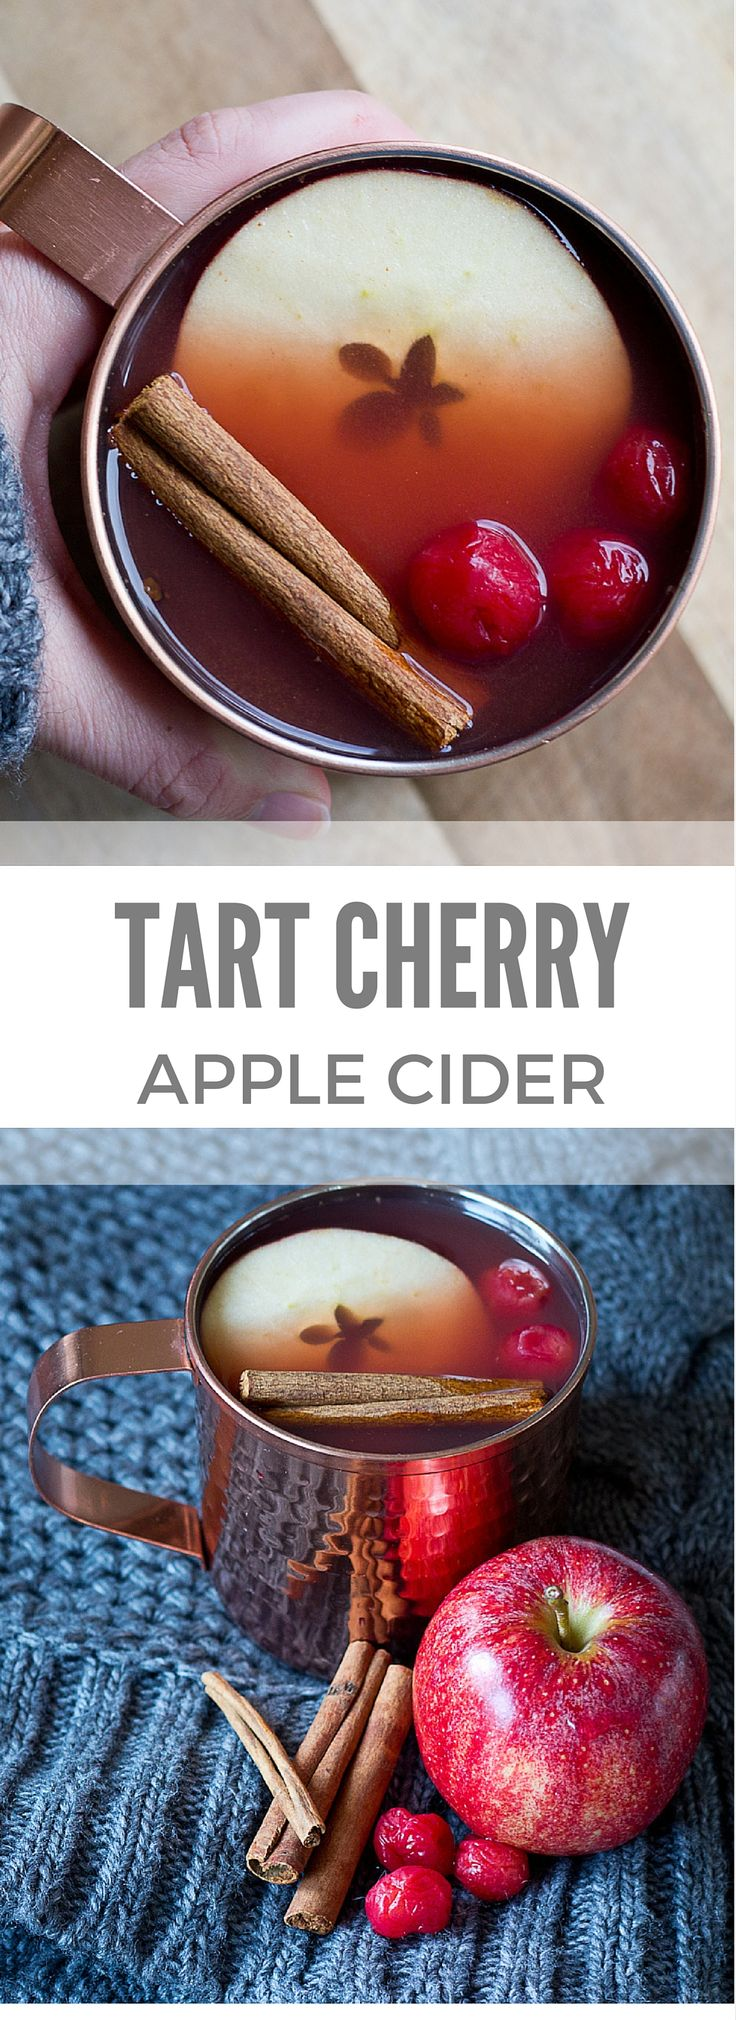 Grab a mug of Mulled Tart Cherry Apple Cider this holiday season. A traditional warm apple cider infused with Montmorency tart cherries… it's easy to prepare and a festive way to celebrate the most wonderful time of the year. #recipe #tart #cherries #appl